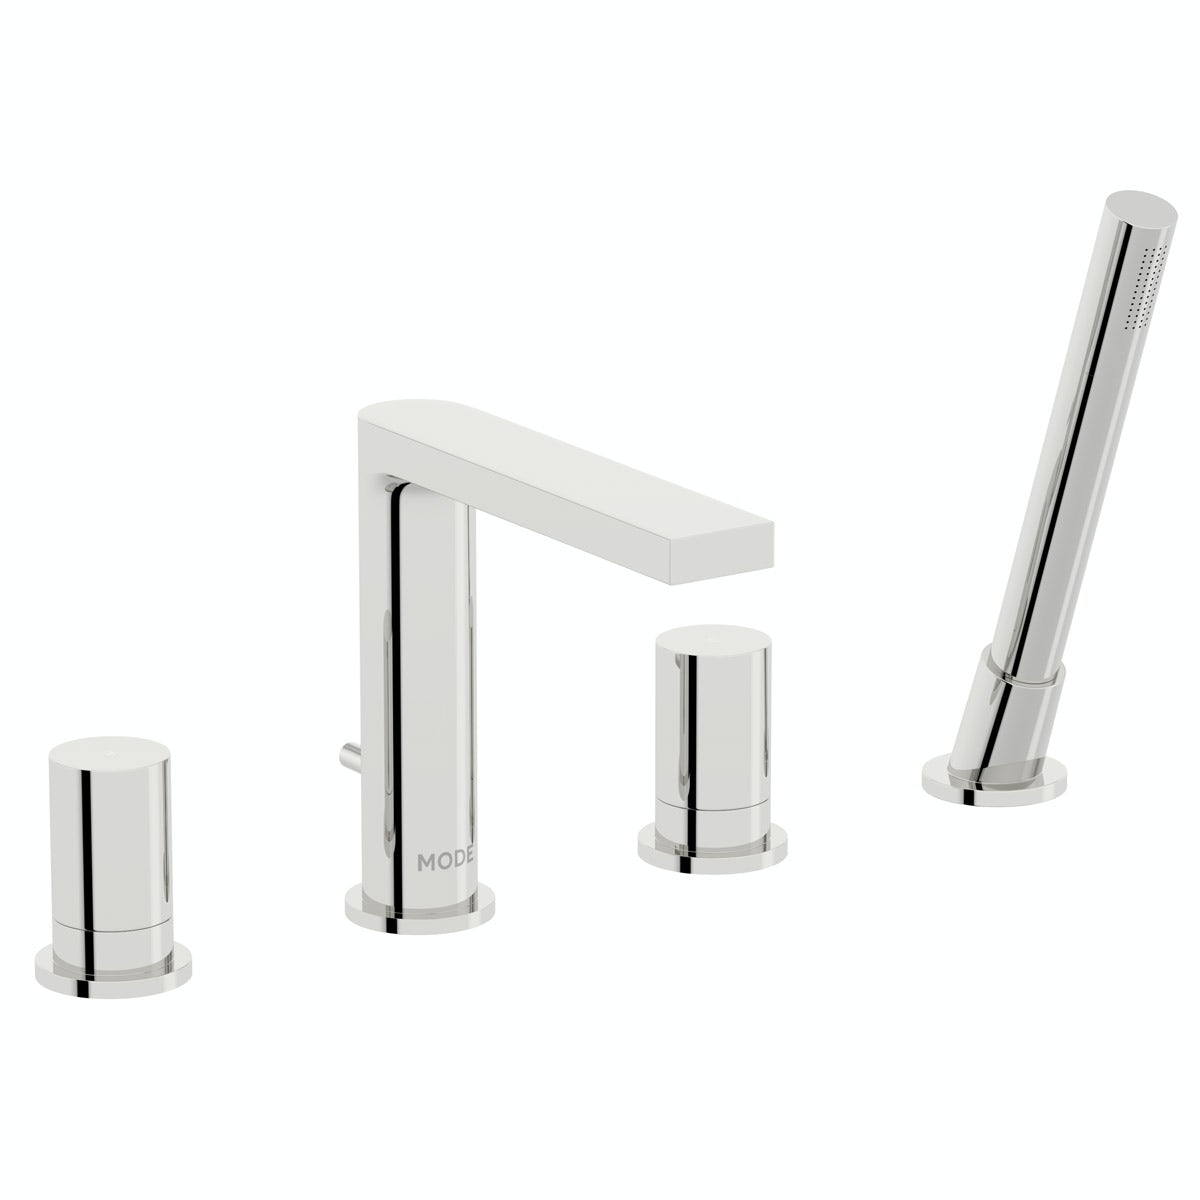 Mode Heath 4 hole bath shower mixer tap